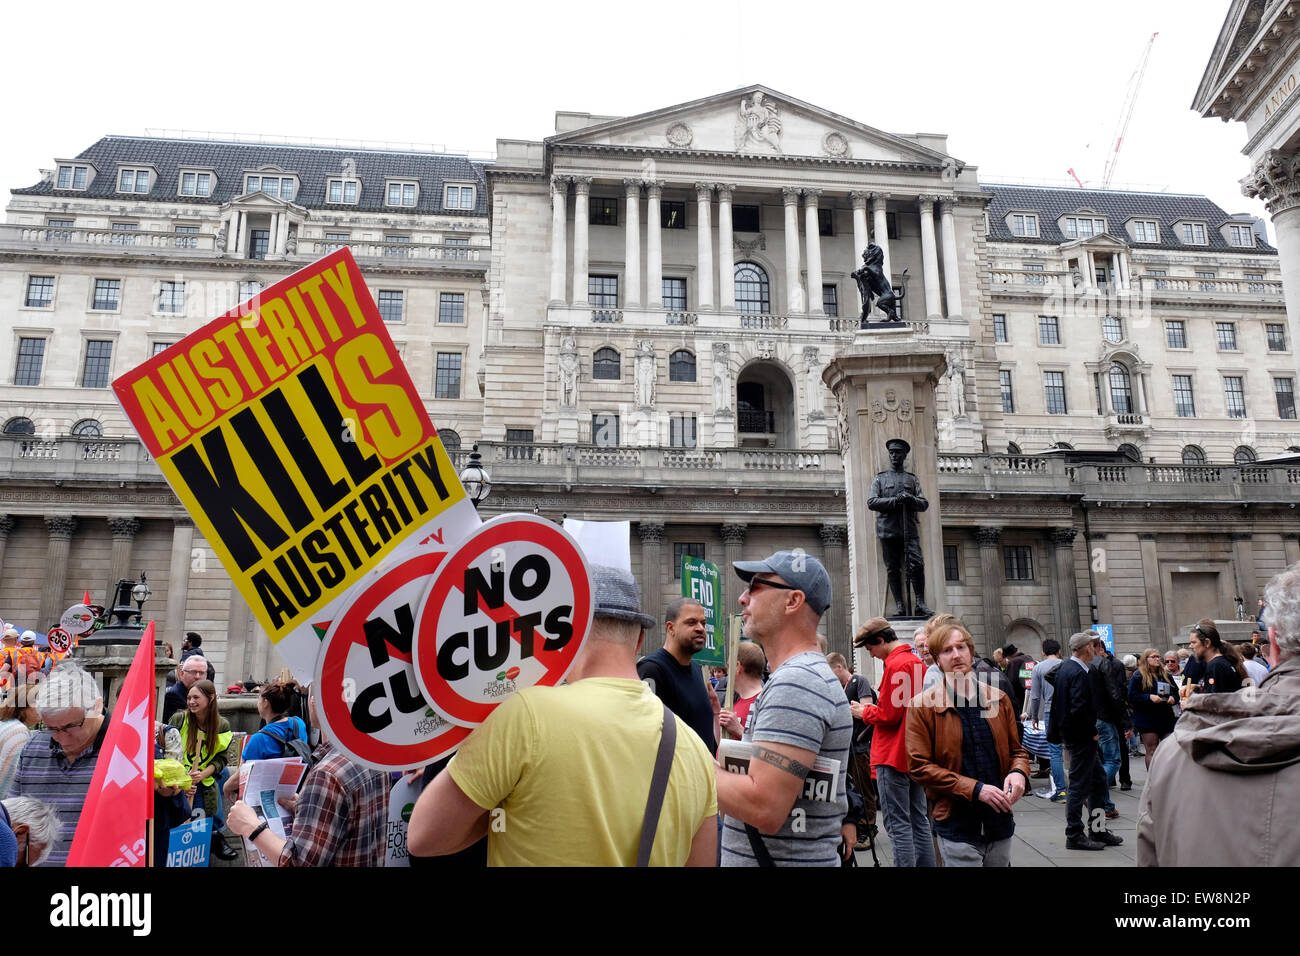 Anti-austerity protesters gather outside the Bank of England - Stock Image